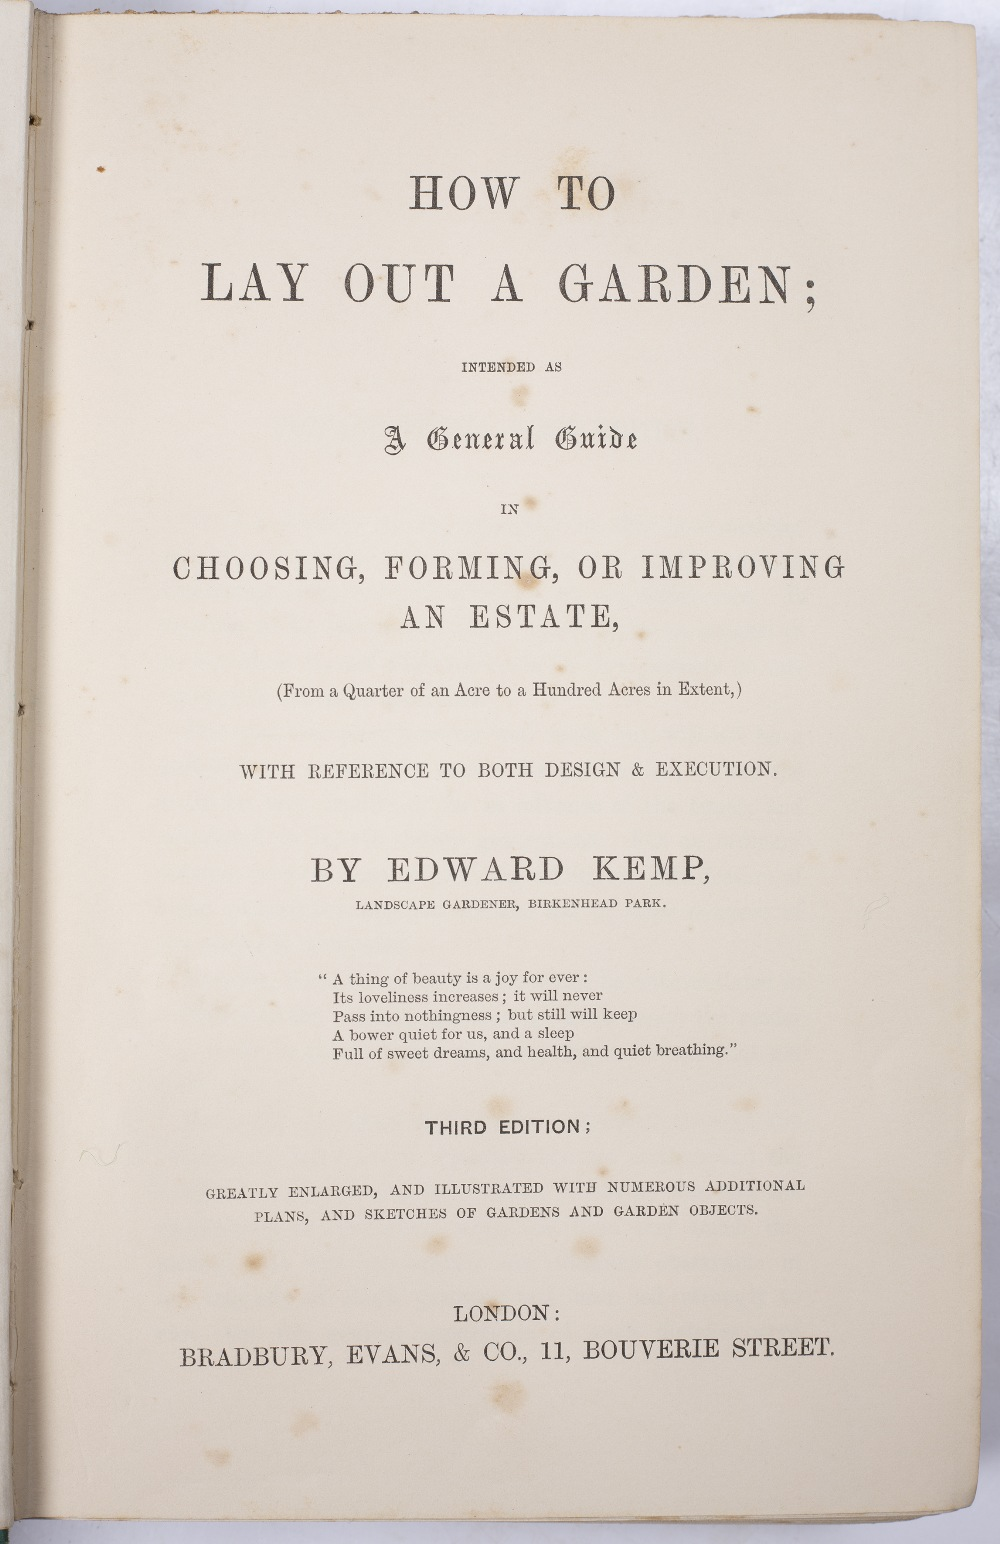 KEMP, Edward, 'How To Lay Out A Garden'. 3rd Ed. Bradbury and Evans, London 1850. green cloth plus - Image 3 of 3